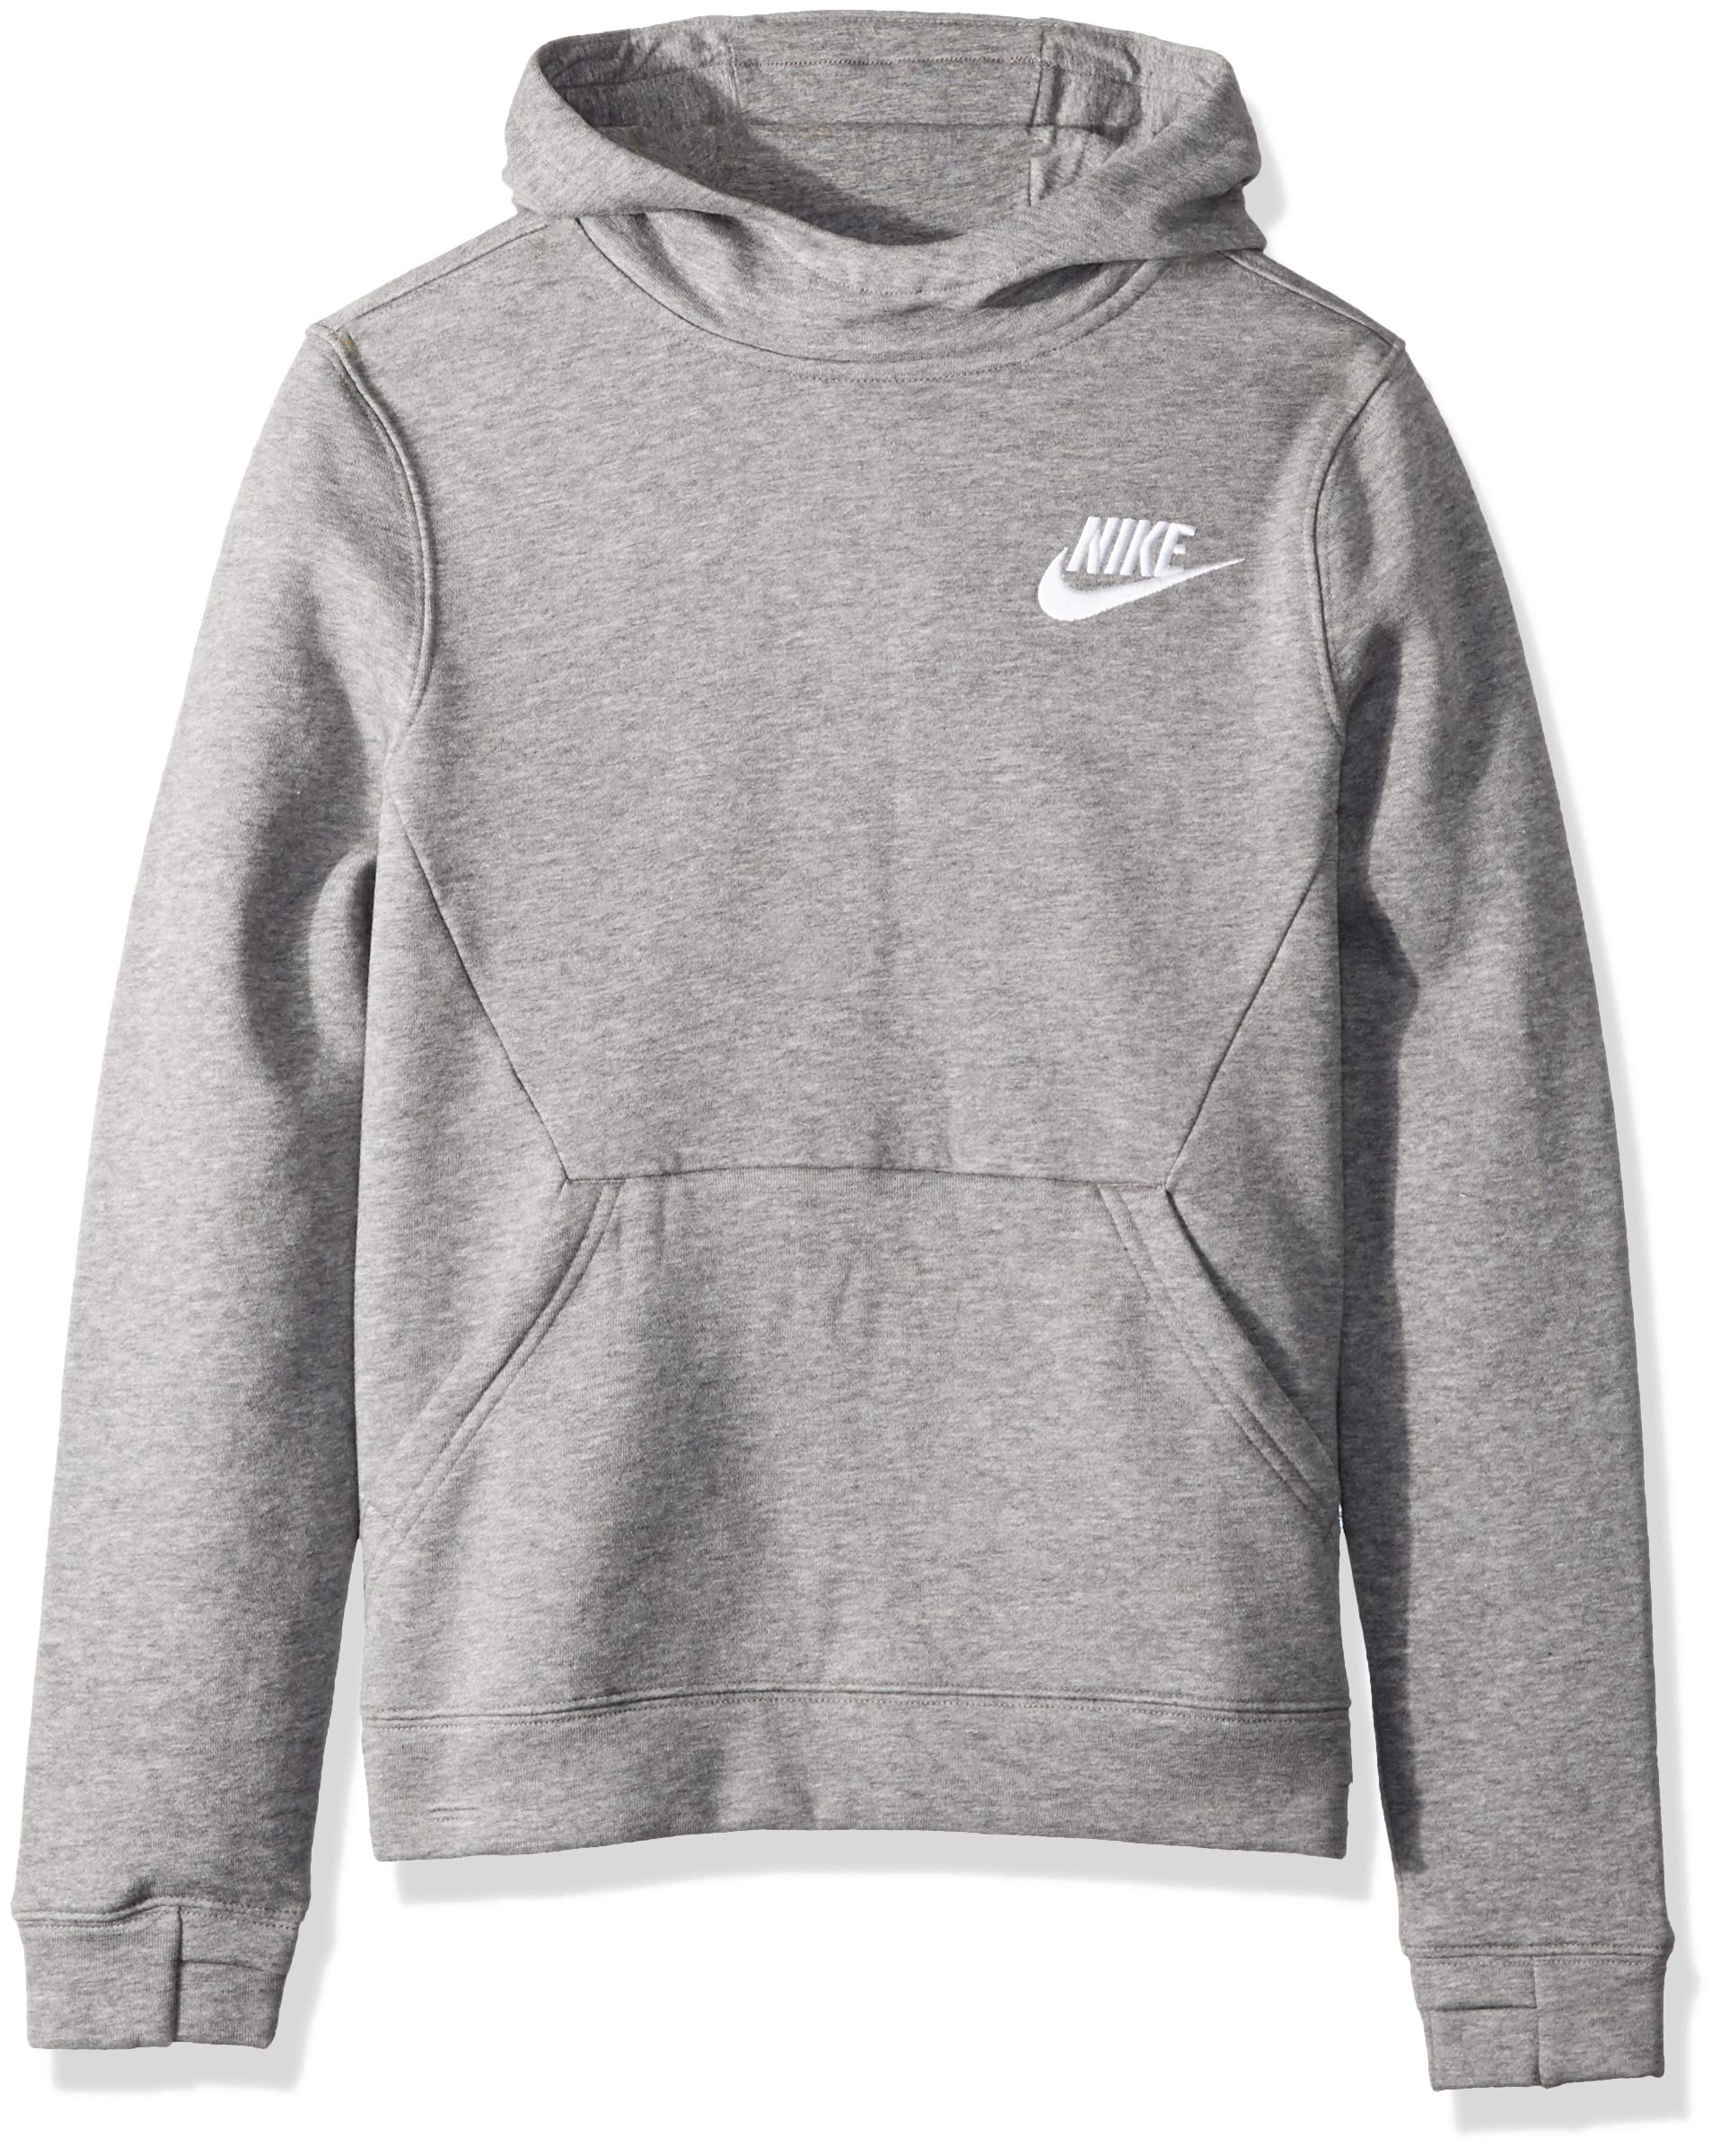 NIKE Sportswear Boys' Club Pullover Hoodie, Carbon Heather/Carbon Heather/White, X-Large